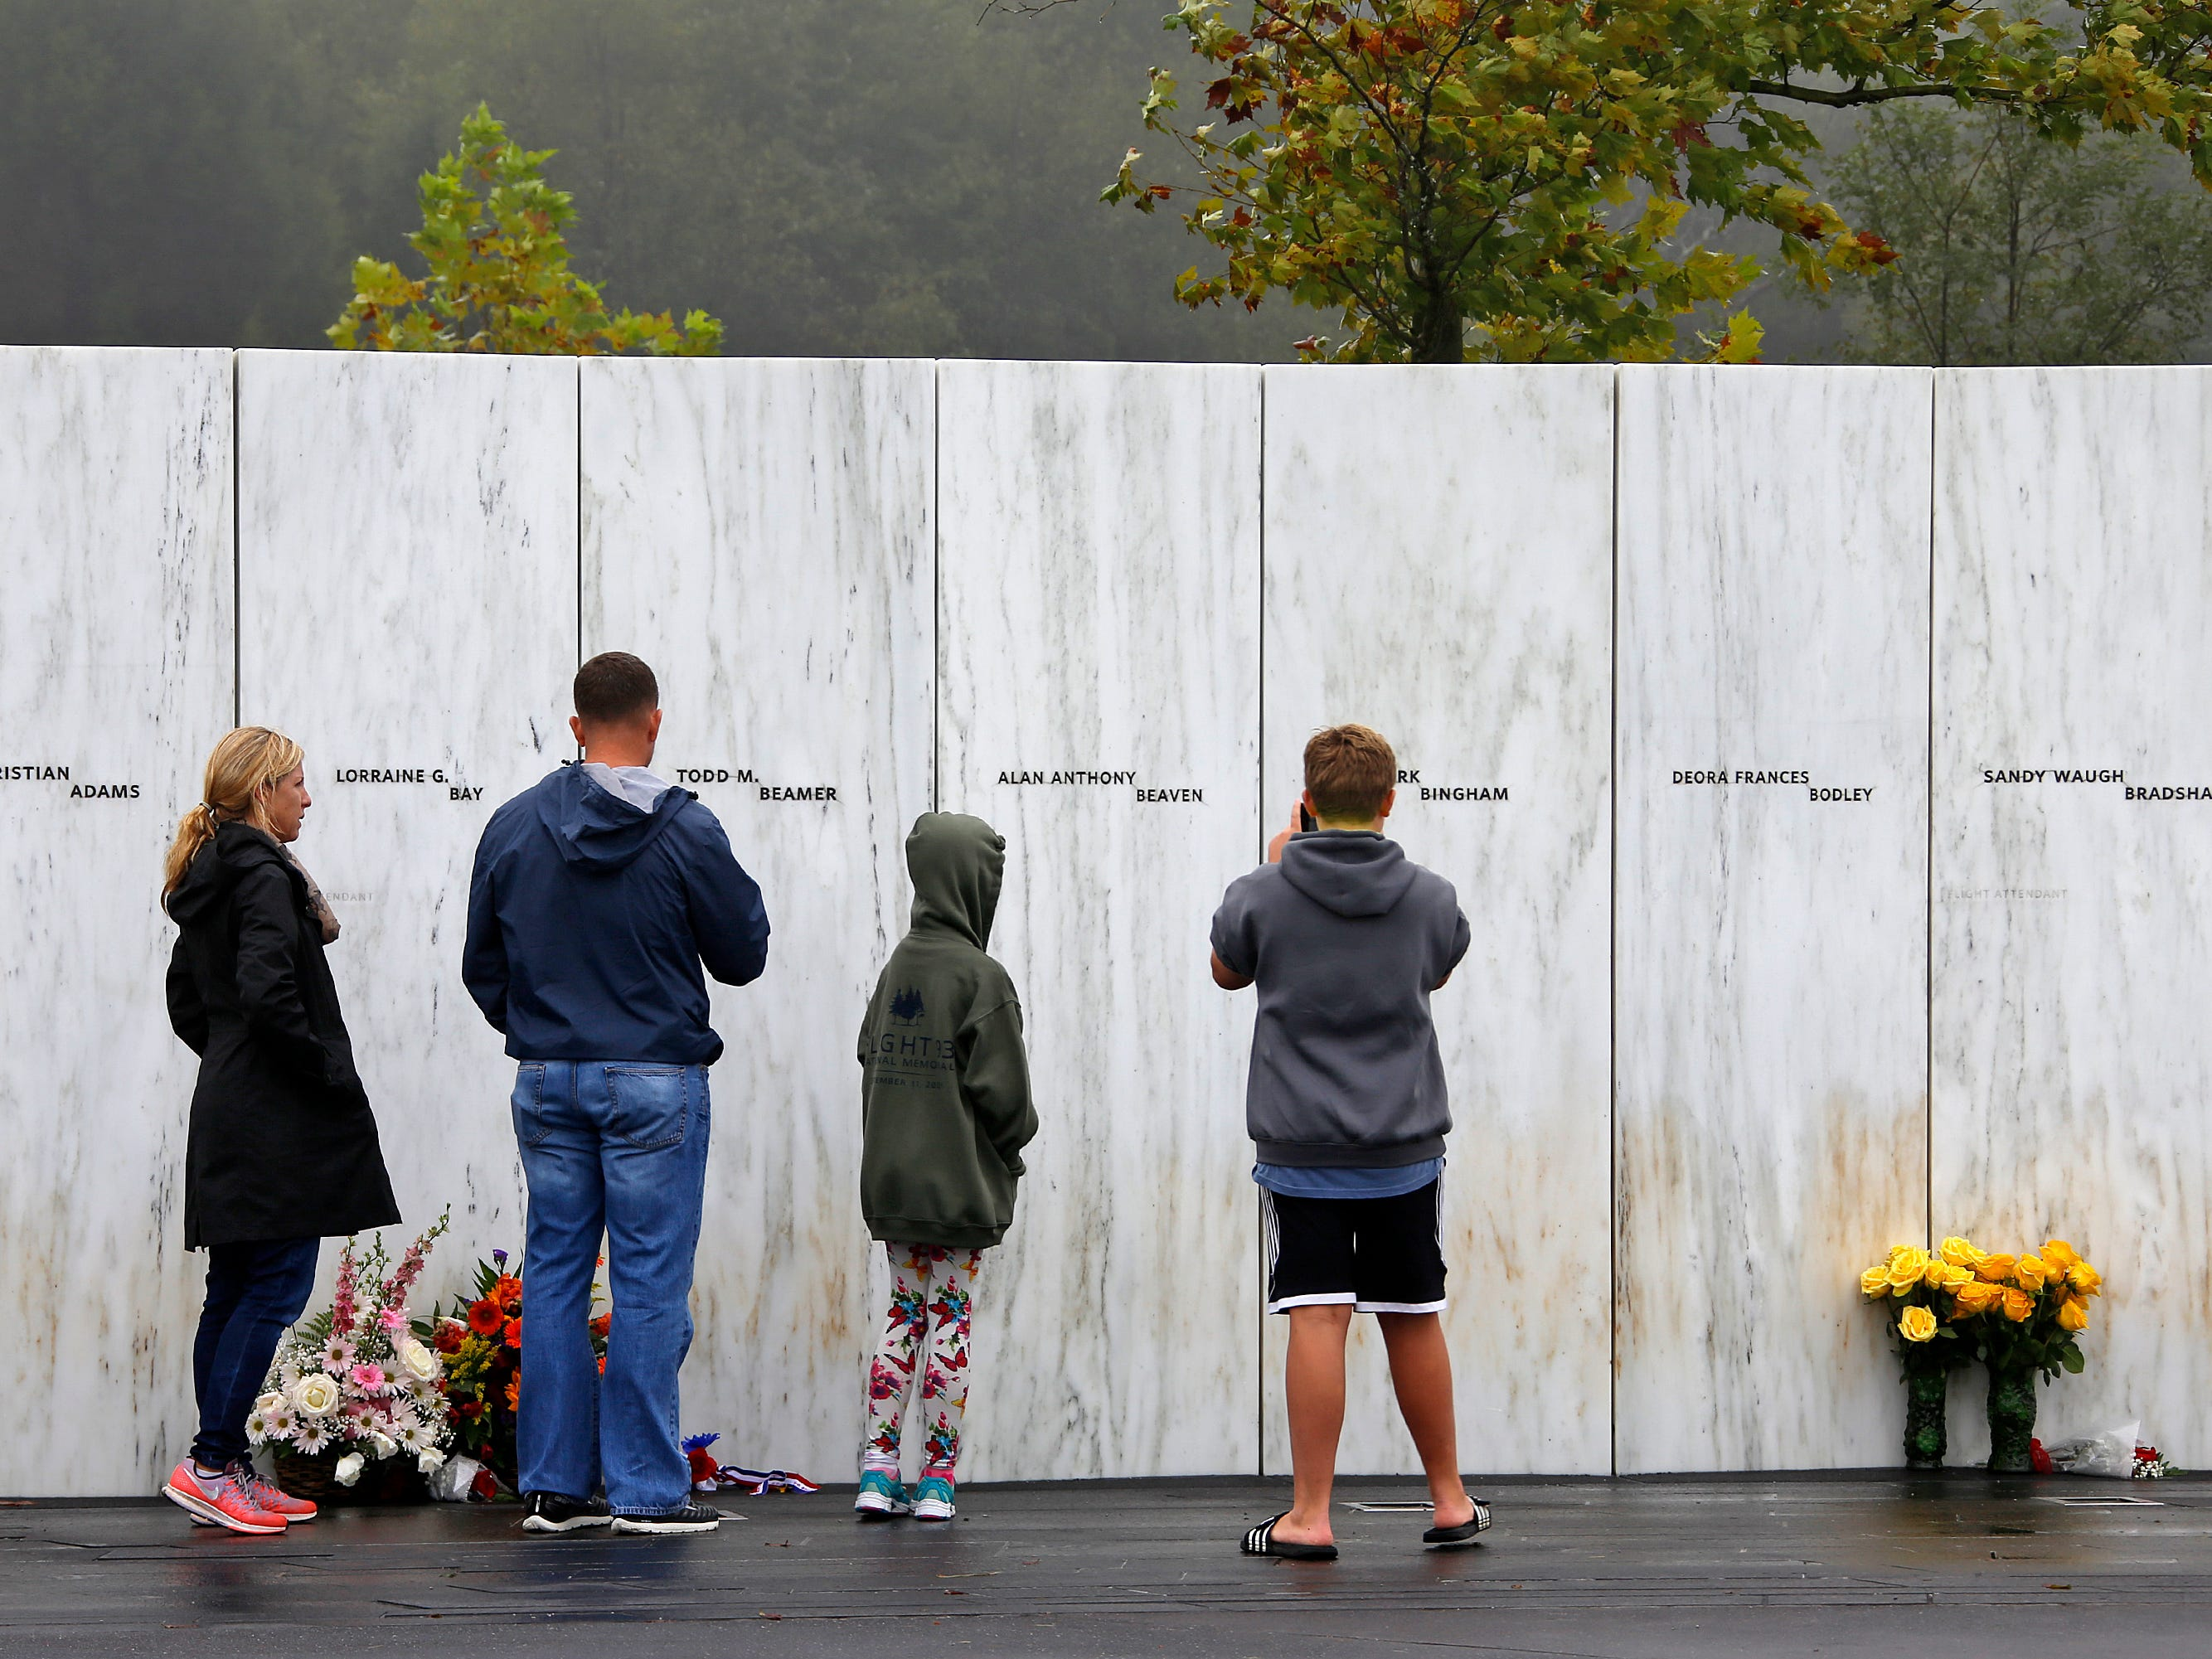 Visitors to the Flight 93 National Memorial in Shanksville, Pa., participate in a sunset memorial service on Monday, Sept. 10, 2018, as the nation marks the 17th anniversary of the Sept. 11, 2001 attacks. (AP Photo/Gene J. Puskar) ORG XMIT: PAGP104